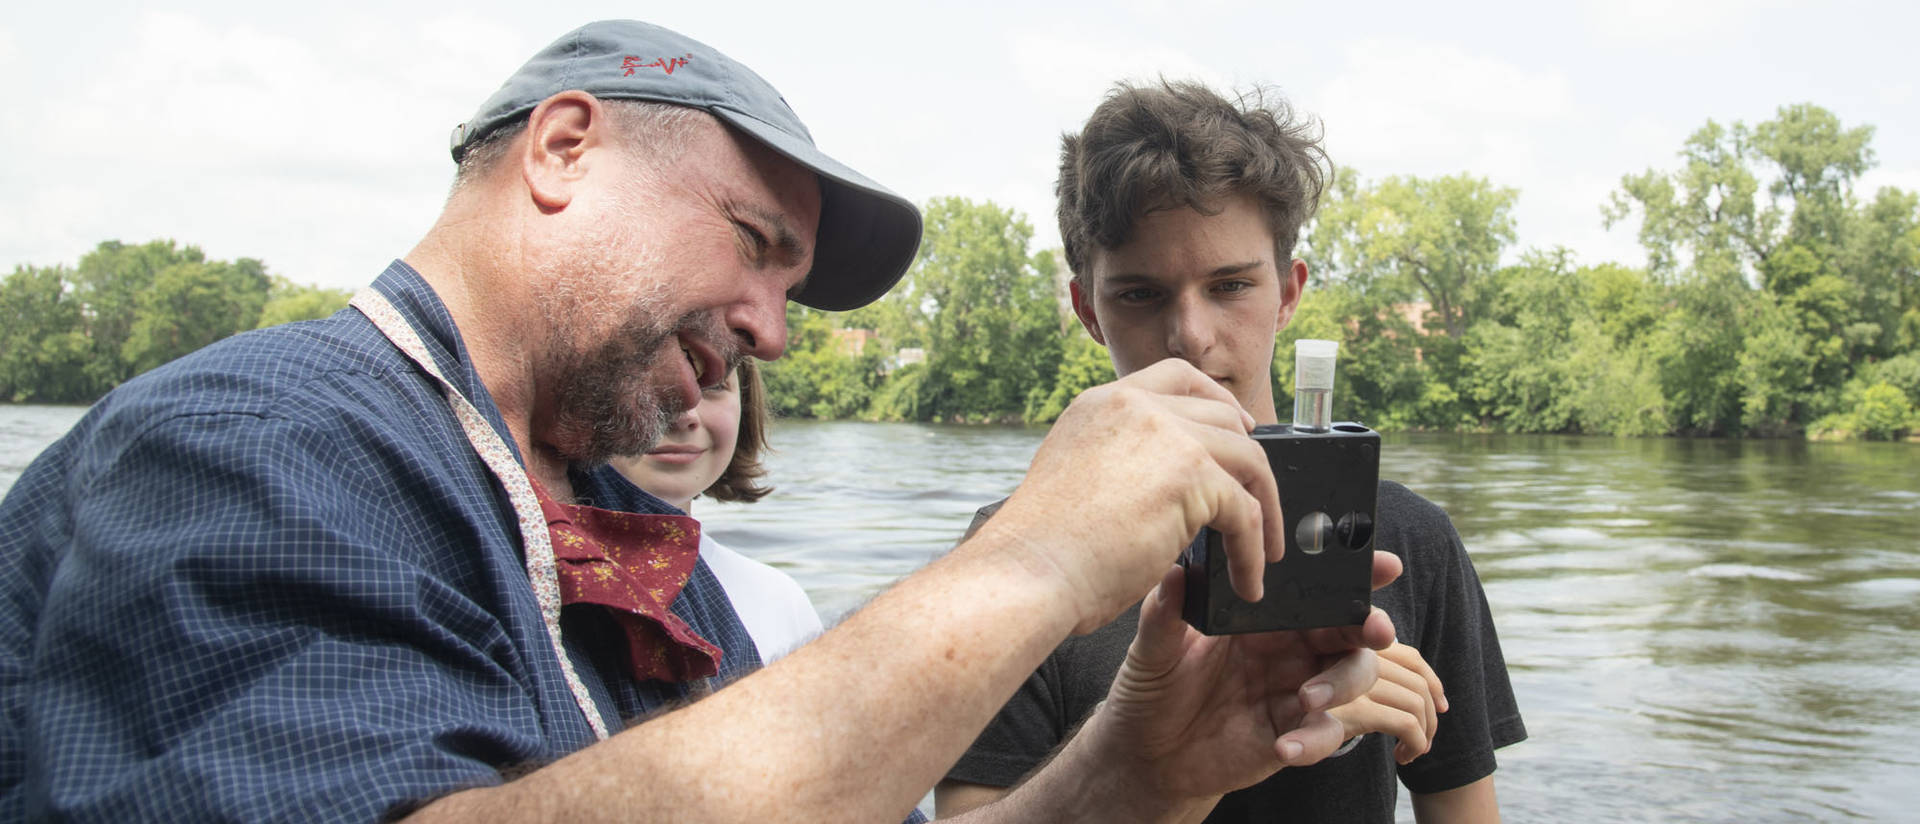 UW-Eau Claire geology professor Dr. J. Brian Mahoney shows high schooler Quinten Anger how to use a colorimetric kit to measure nitrate concentration in the Chippewa River. (Submitted photo)